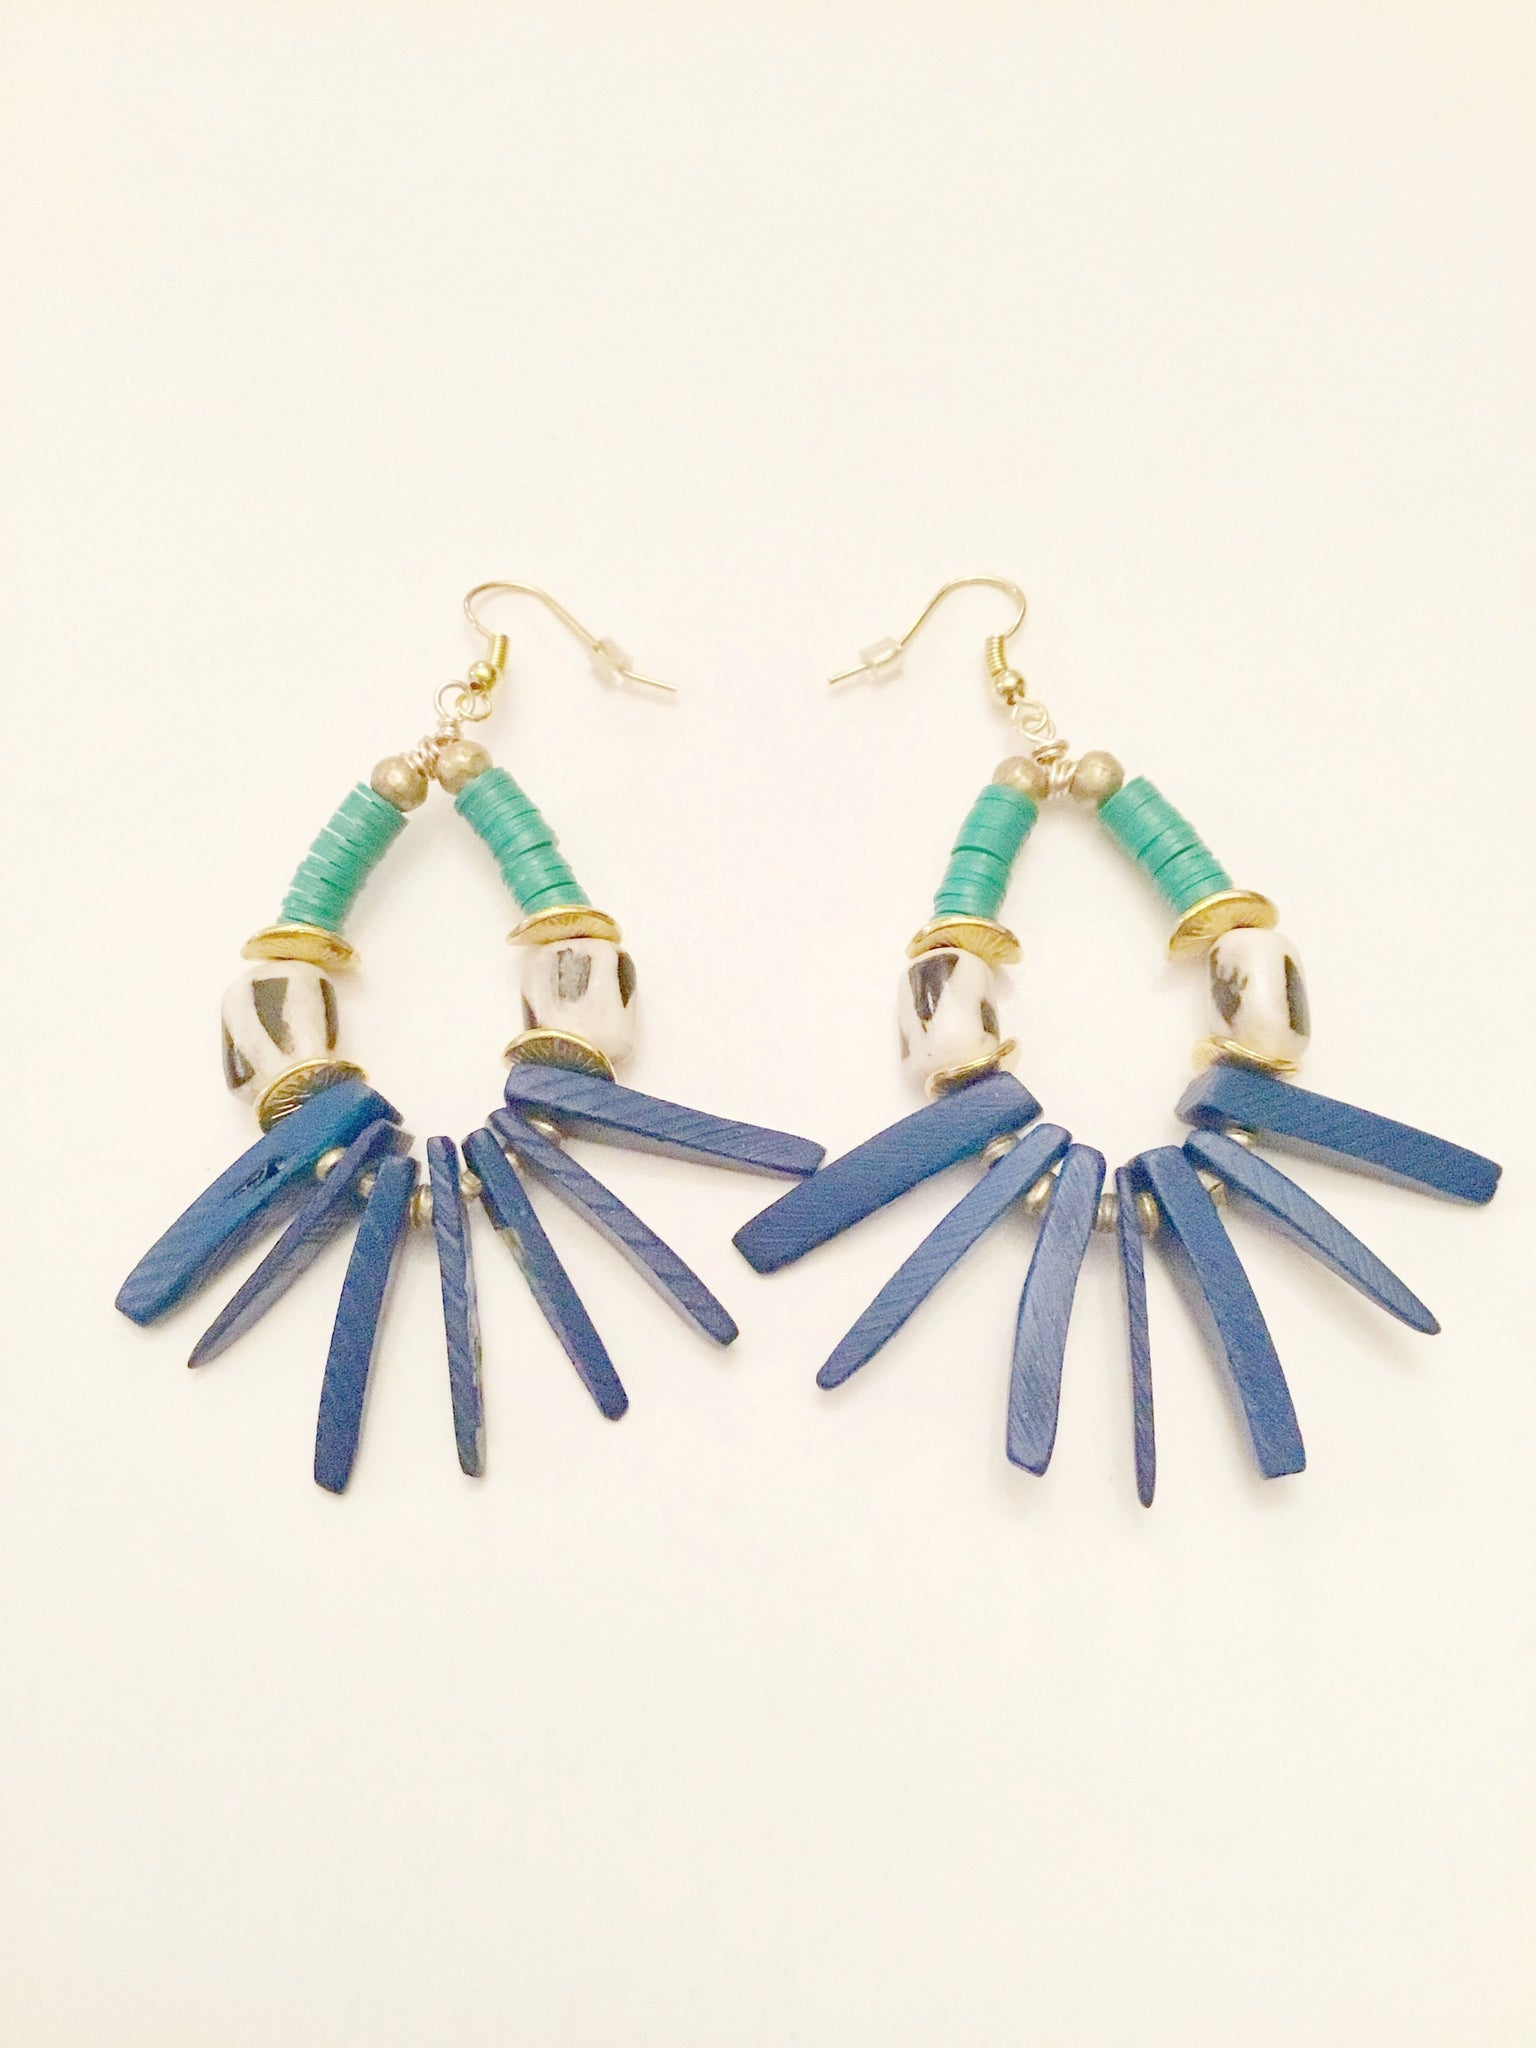 Ethopian Earrings E-0364, designed by Leyu Ambare Handmade Jewelry.